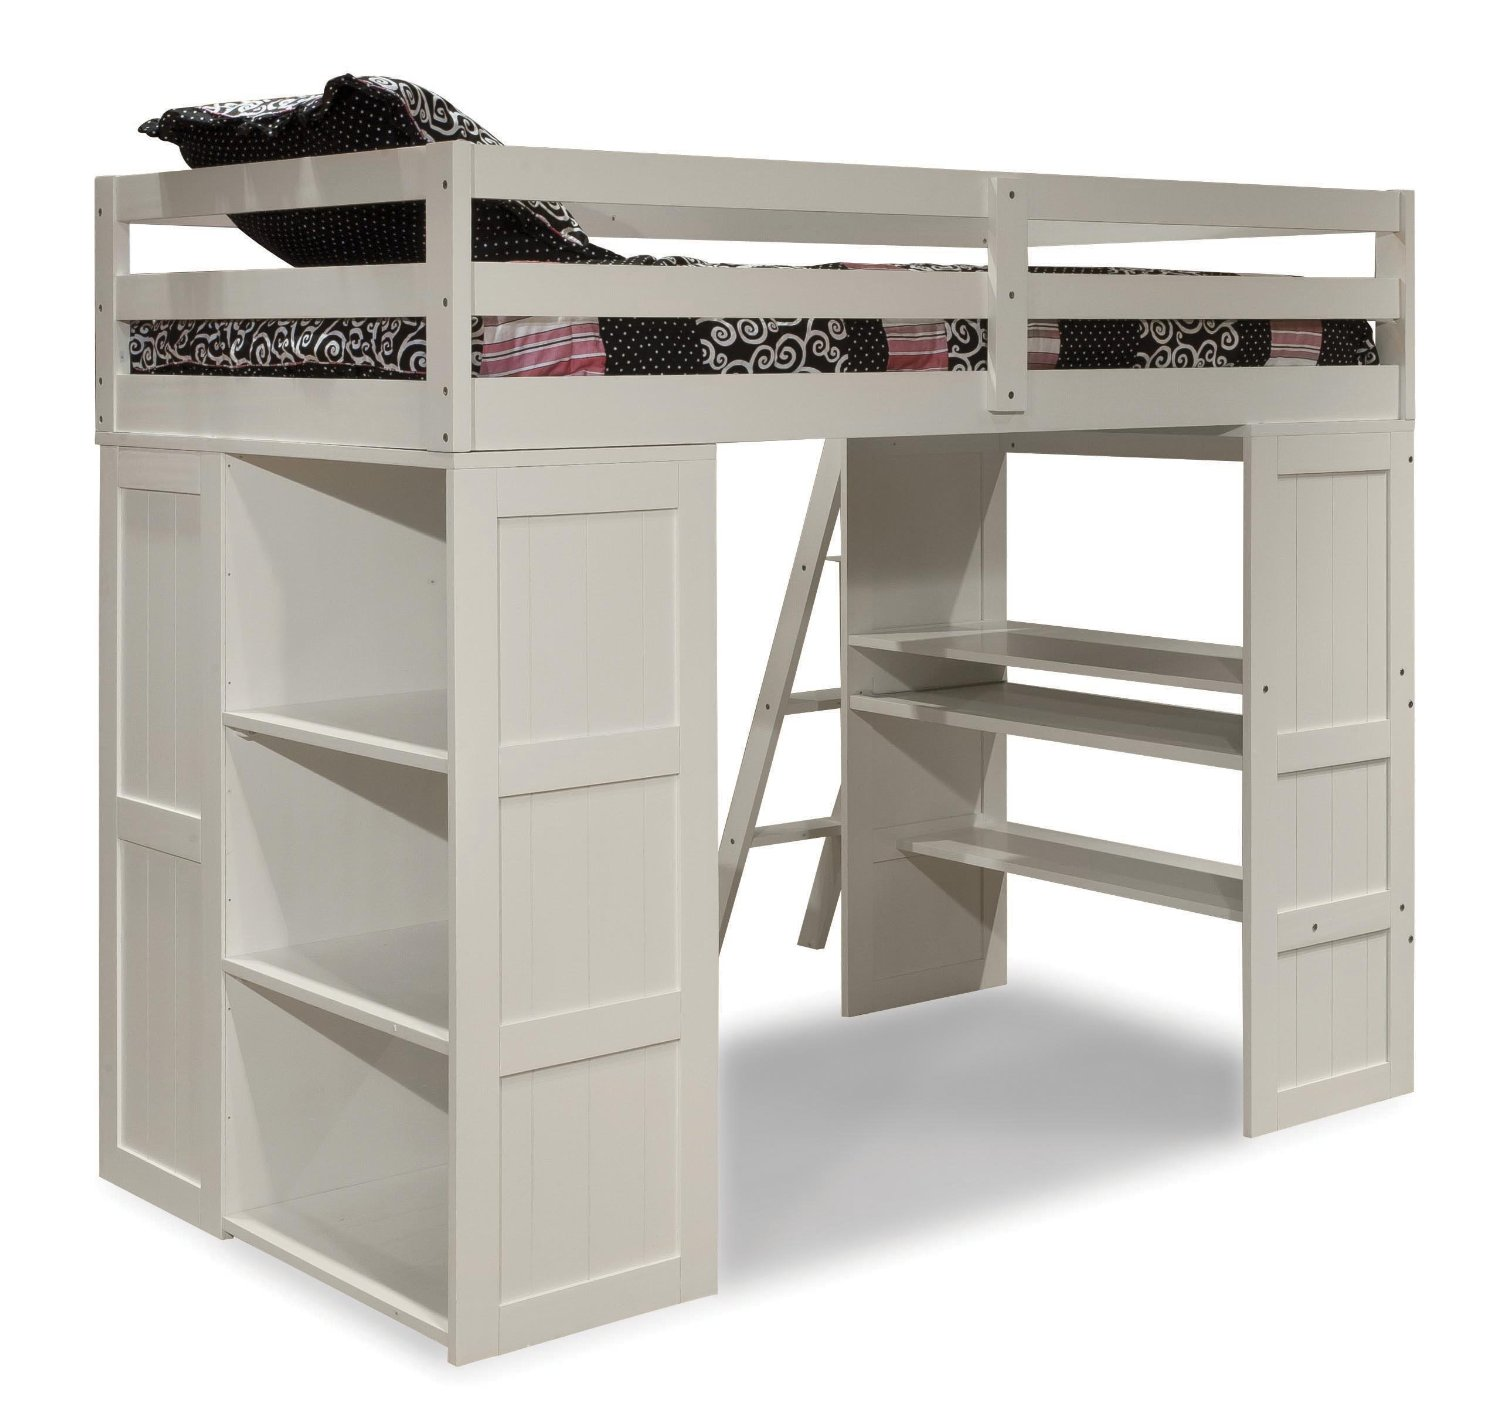 Epic Canwood Skyway Loft Bed with Desk and Storage Tower